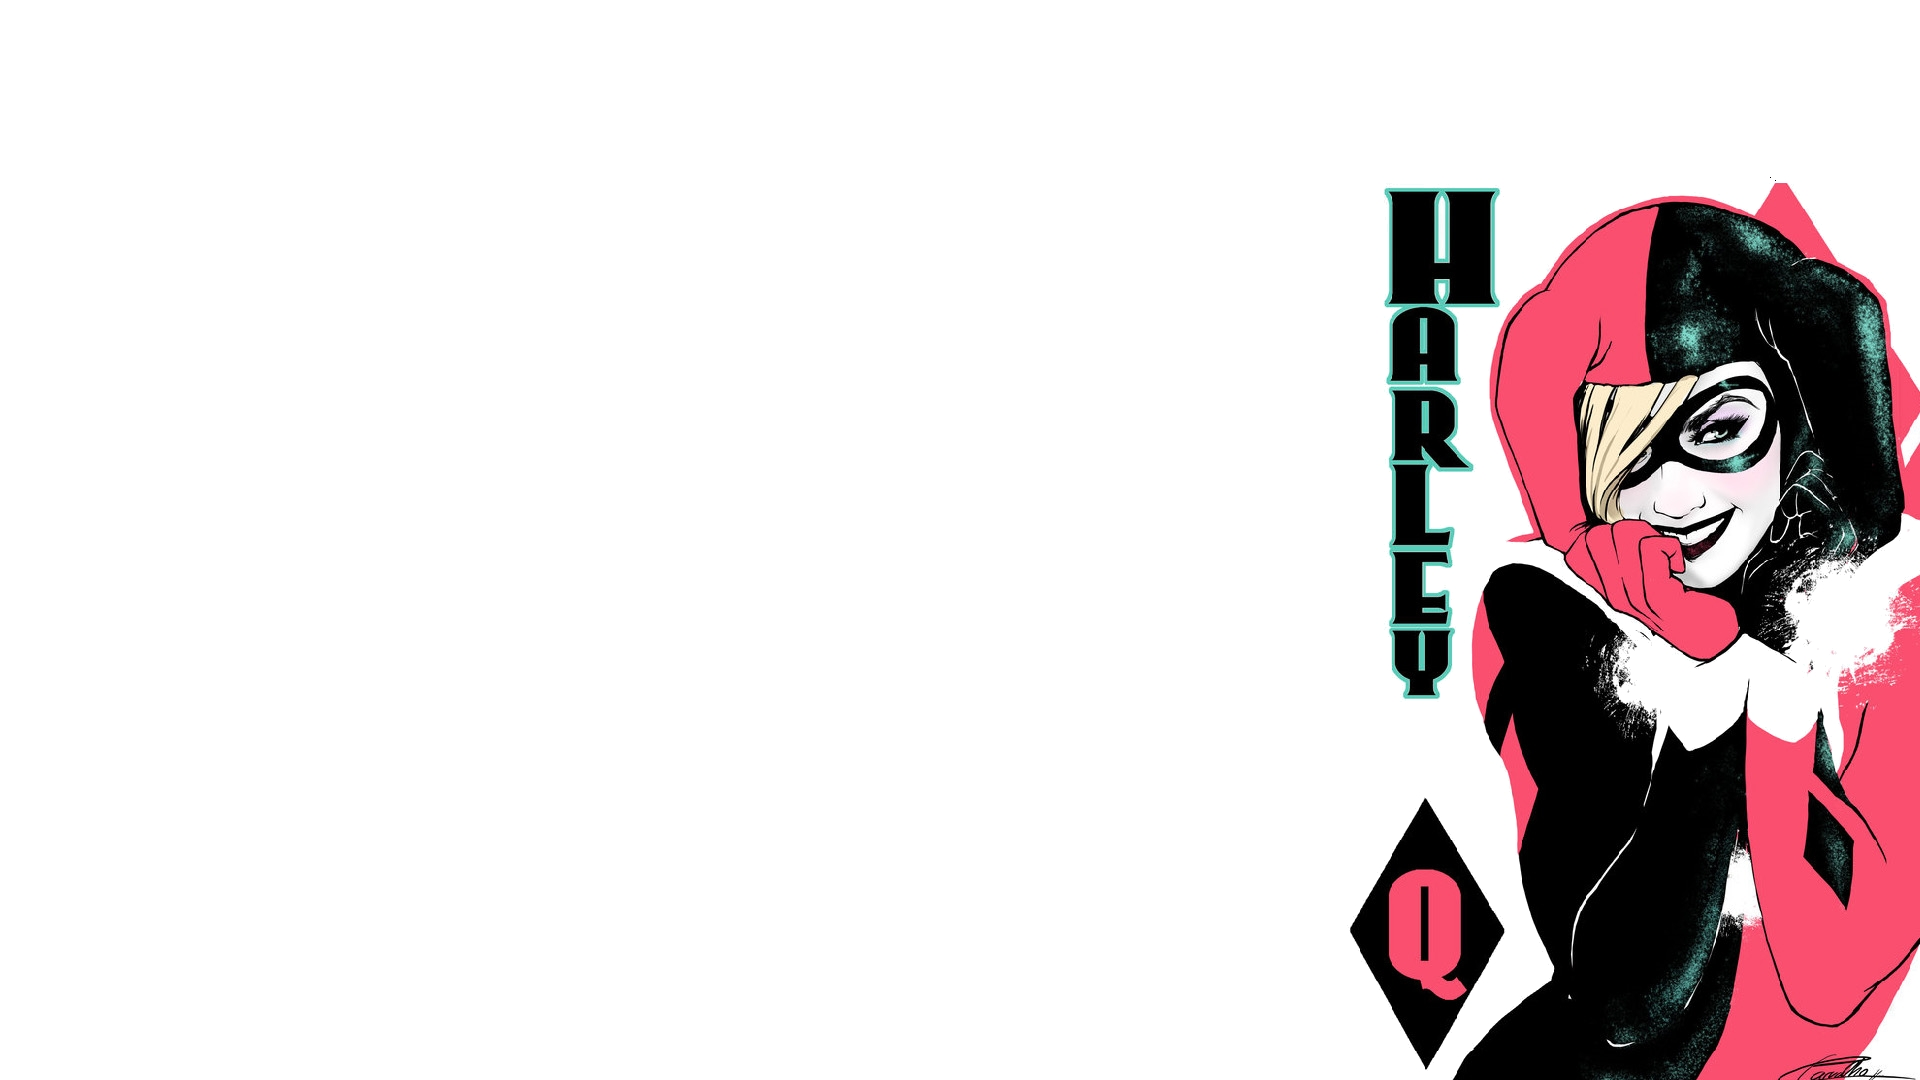 Harley quinn iphone clipart banner 1000+ images about Harley Quinn on Pinterest | Vintage pop art ... banner